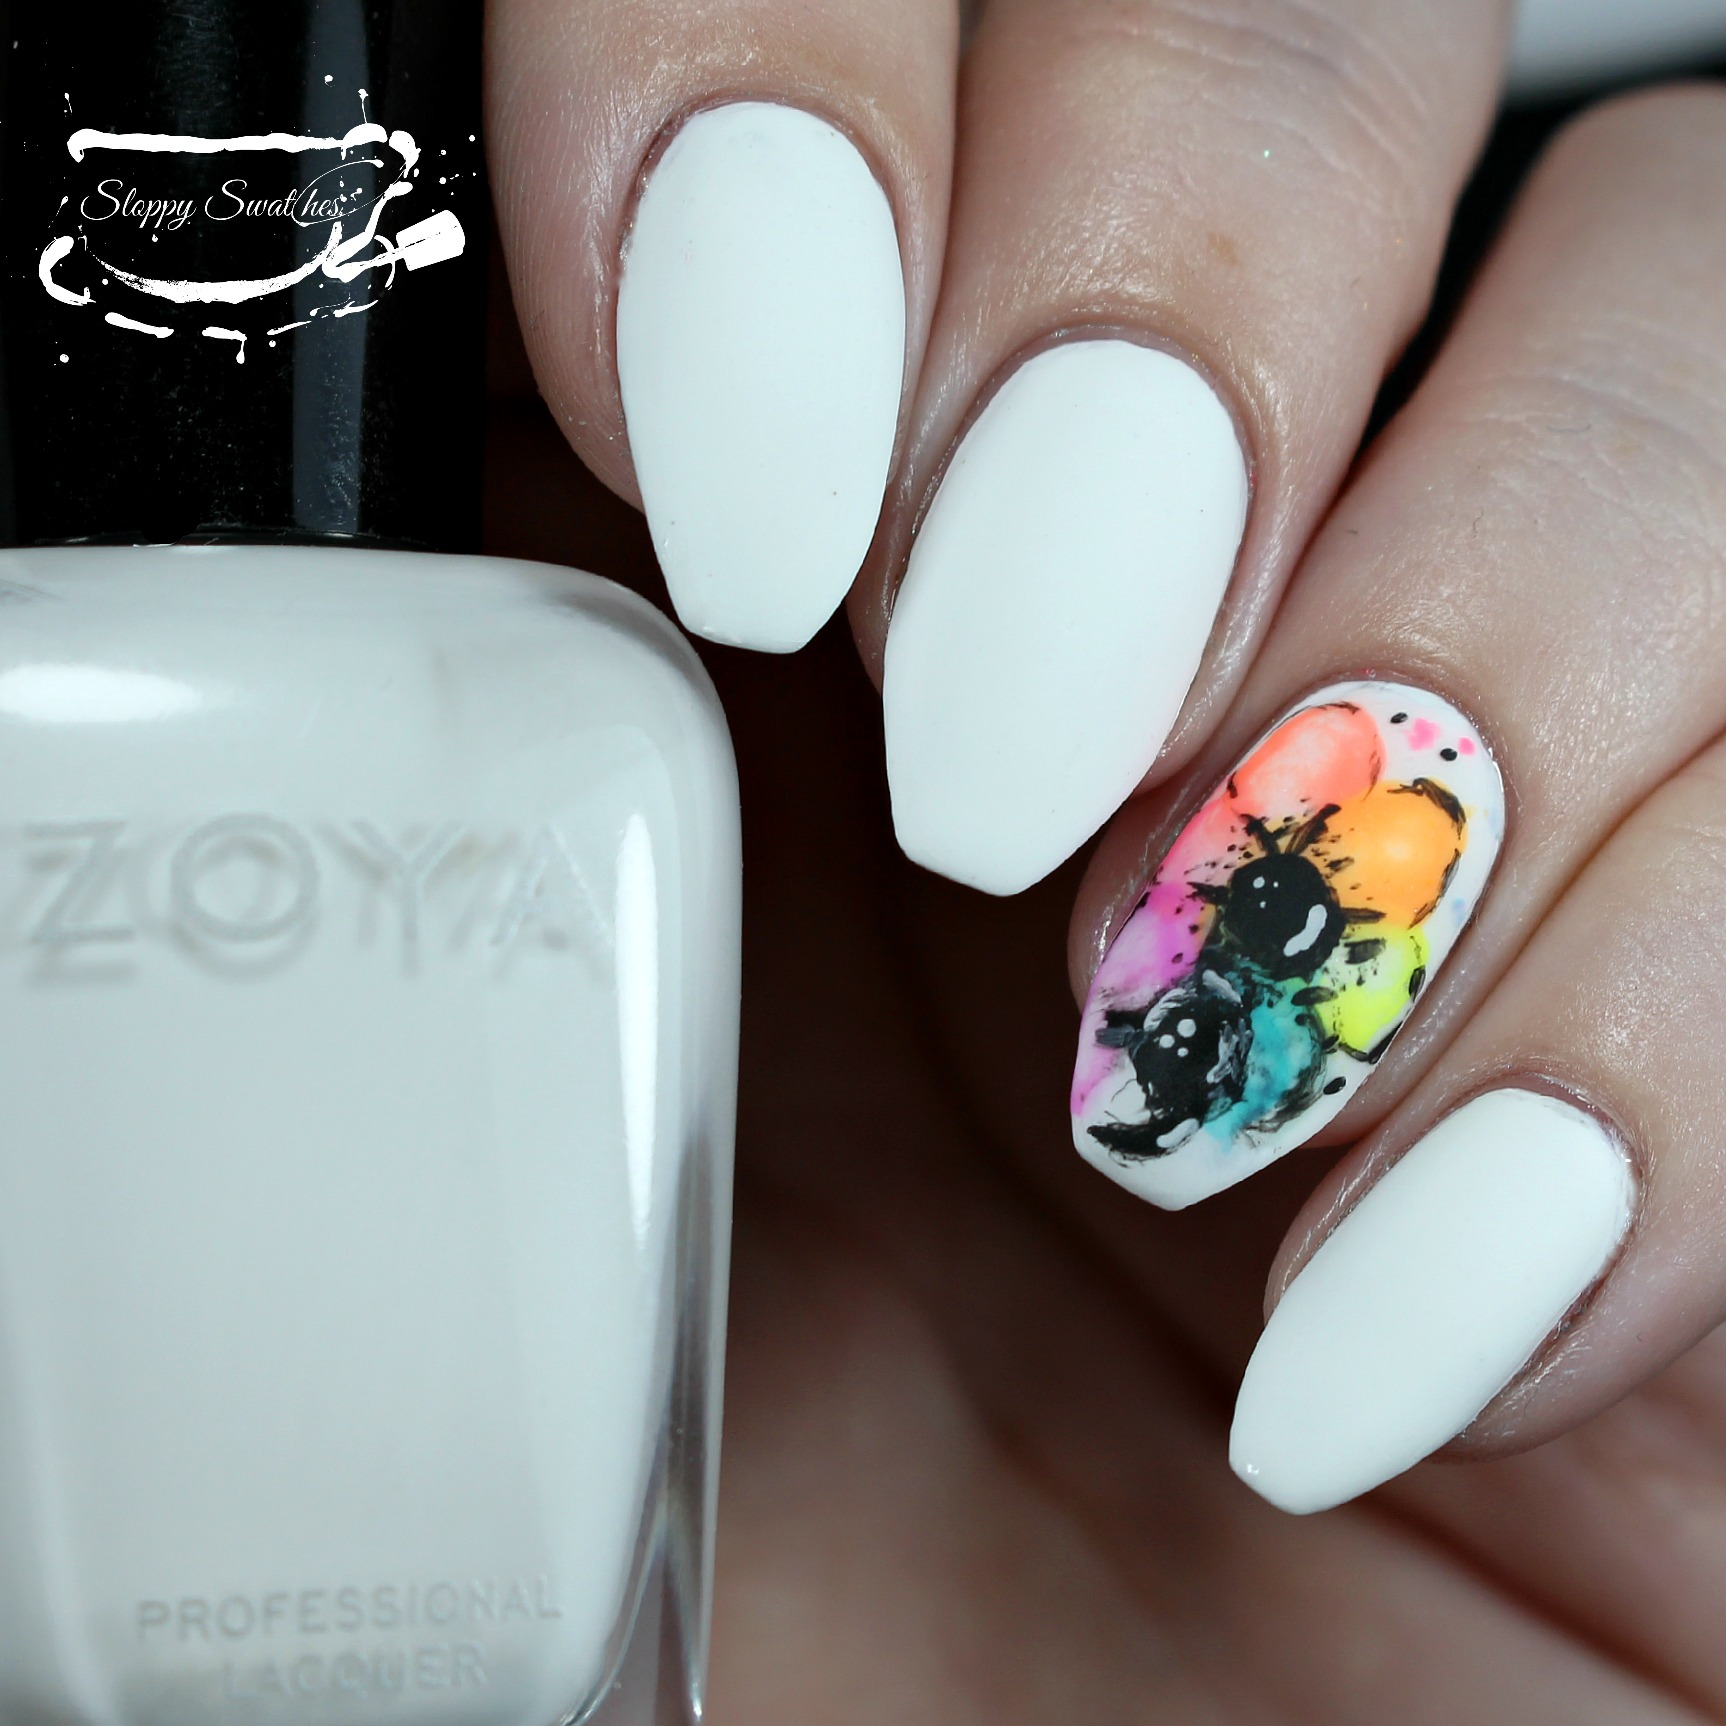 Nailart Flowers For Skepti Depression Awareness Nails Nail Art And Swatches